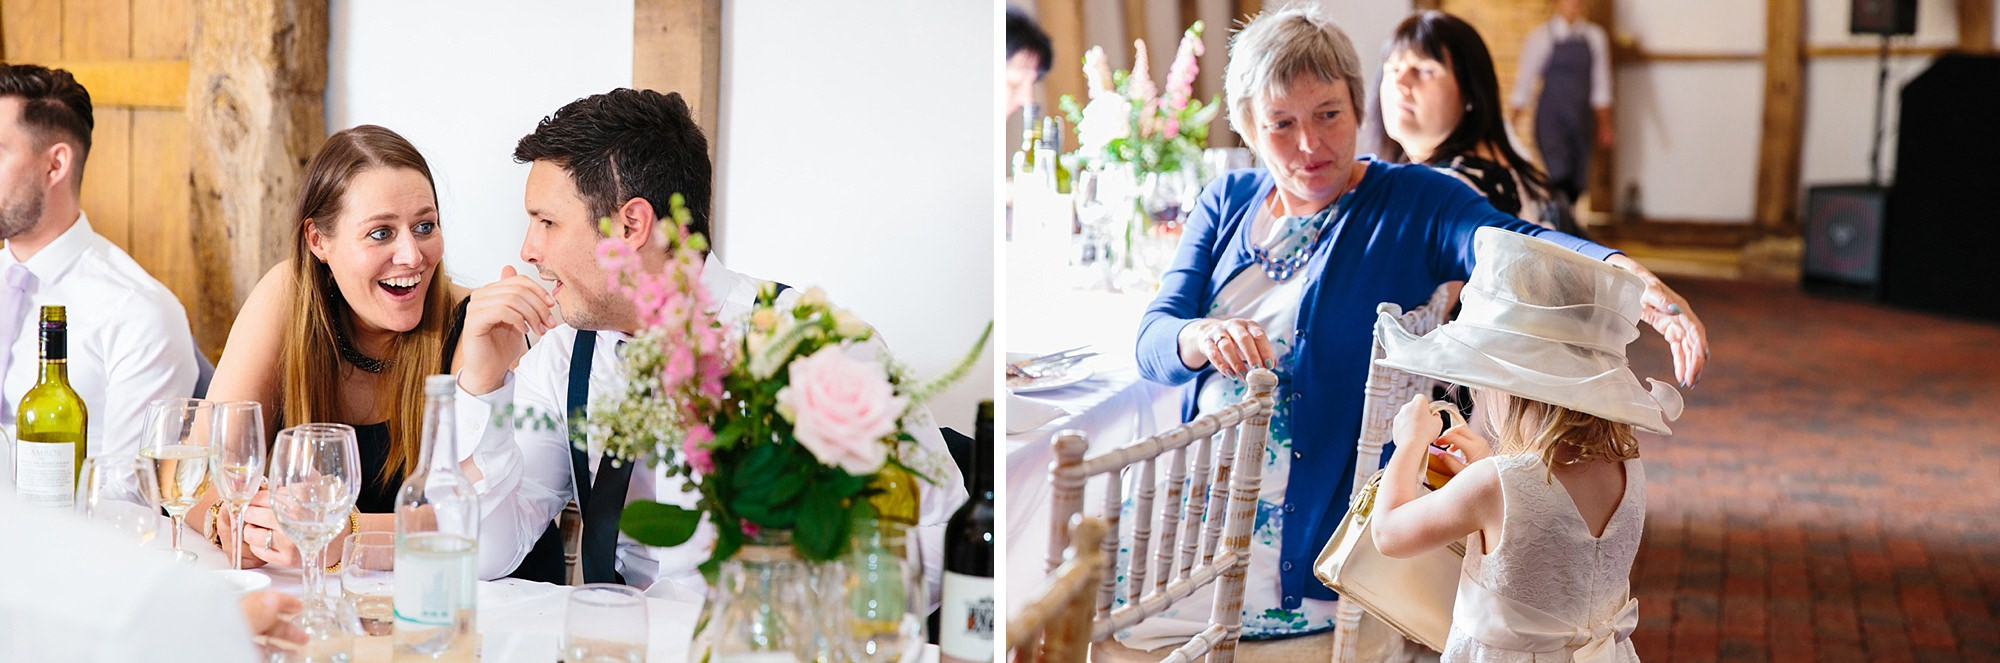 Old Greens Barn Newdigate wedding photography wedding guests during dinner